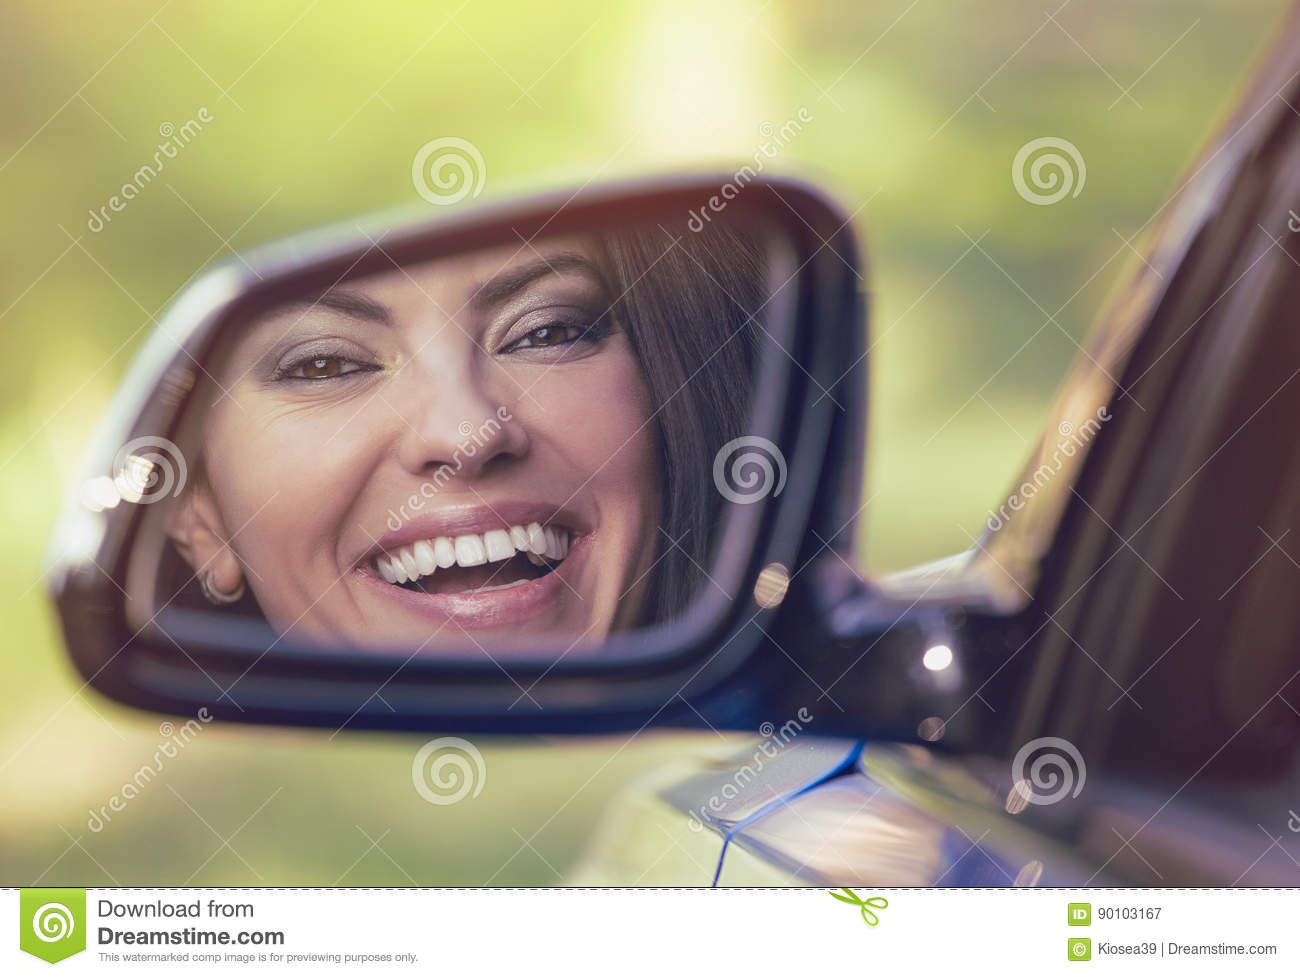 Happy Woman Driver Looking In Car Side View Mirror